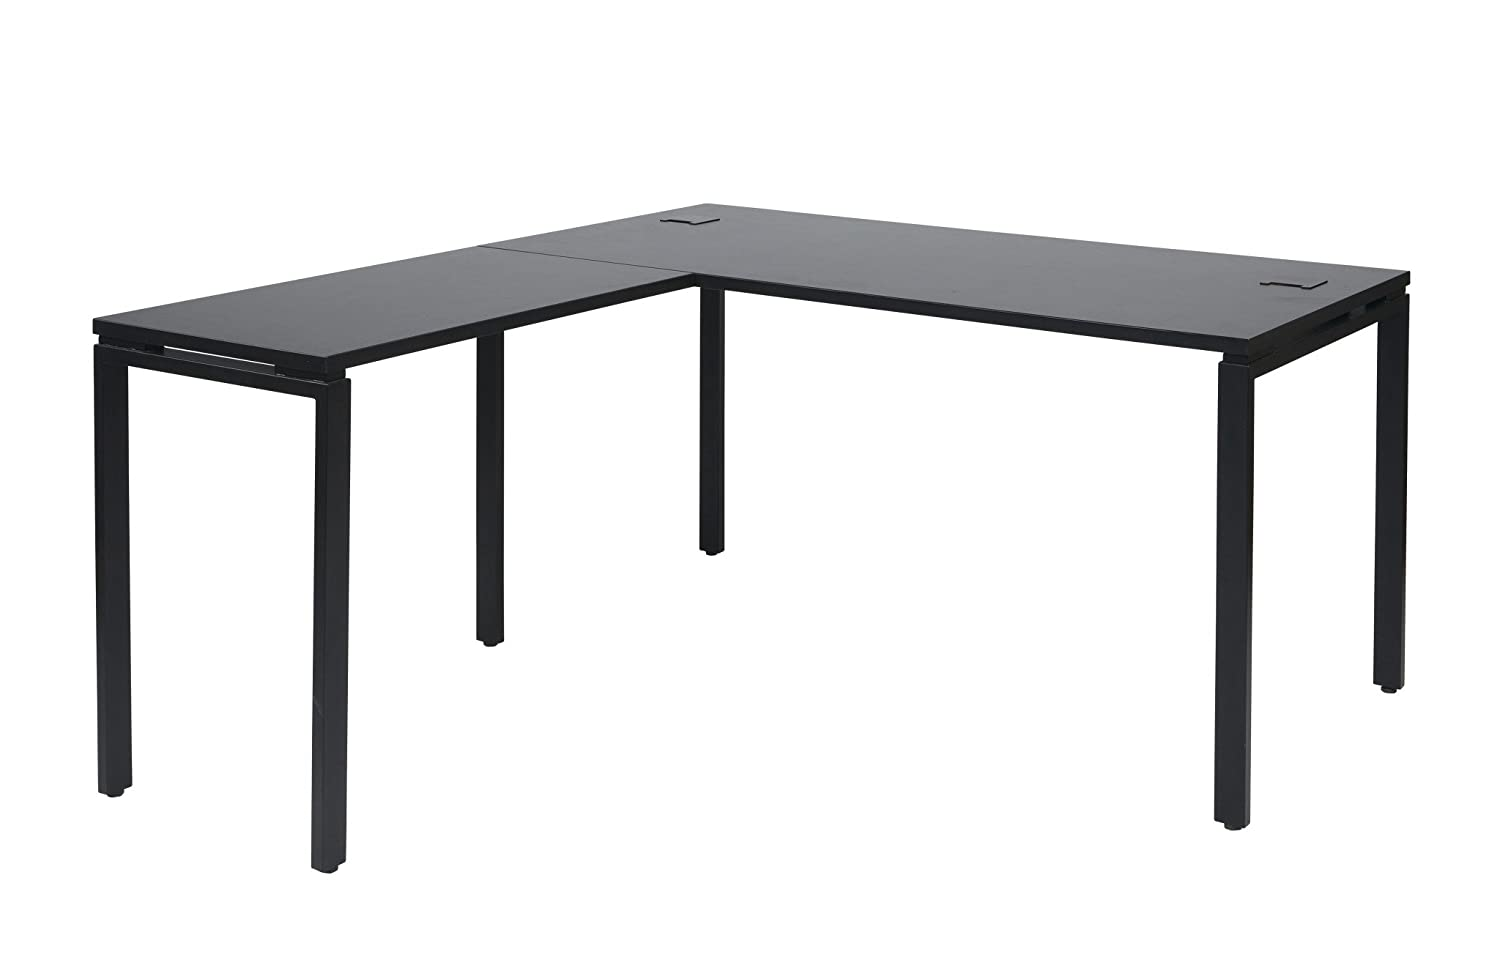 Amazon.com: Office Star Prado Complete L Shaped Desk With Laminate Top And  Metal Legs, Black: Kitchen U0026 Dining